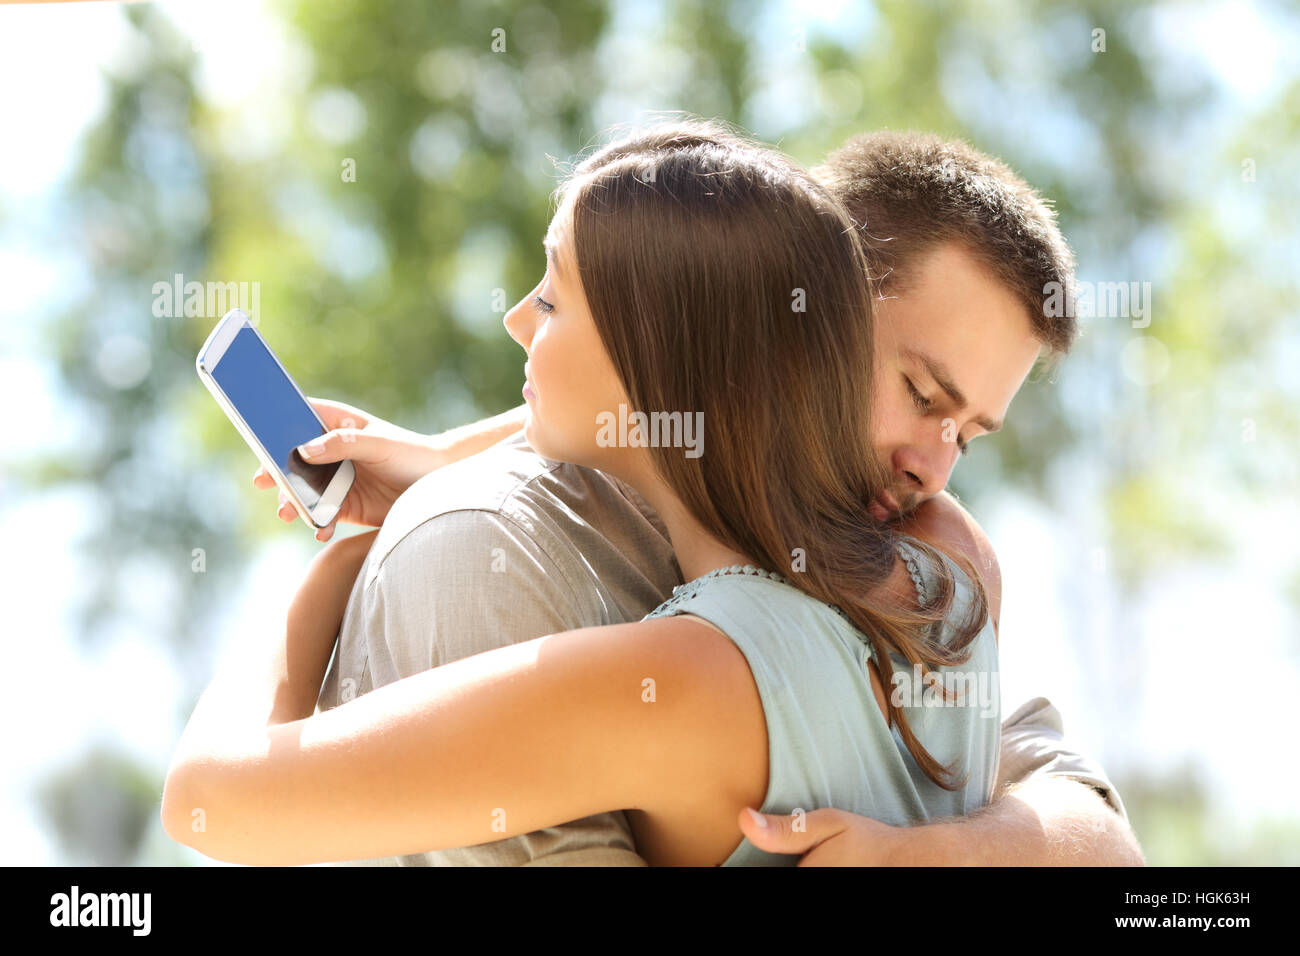 Girlfriend cheating texting on the phone and hugging her innocent boyfriend - Stock Image